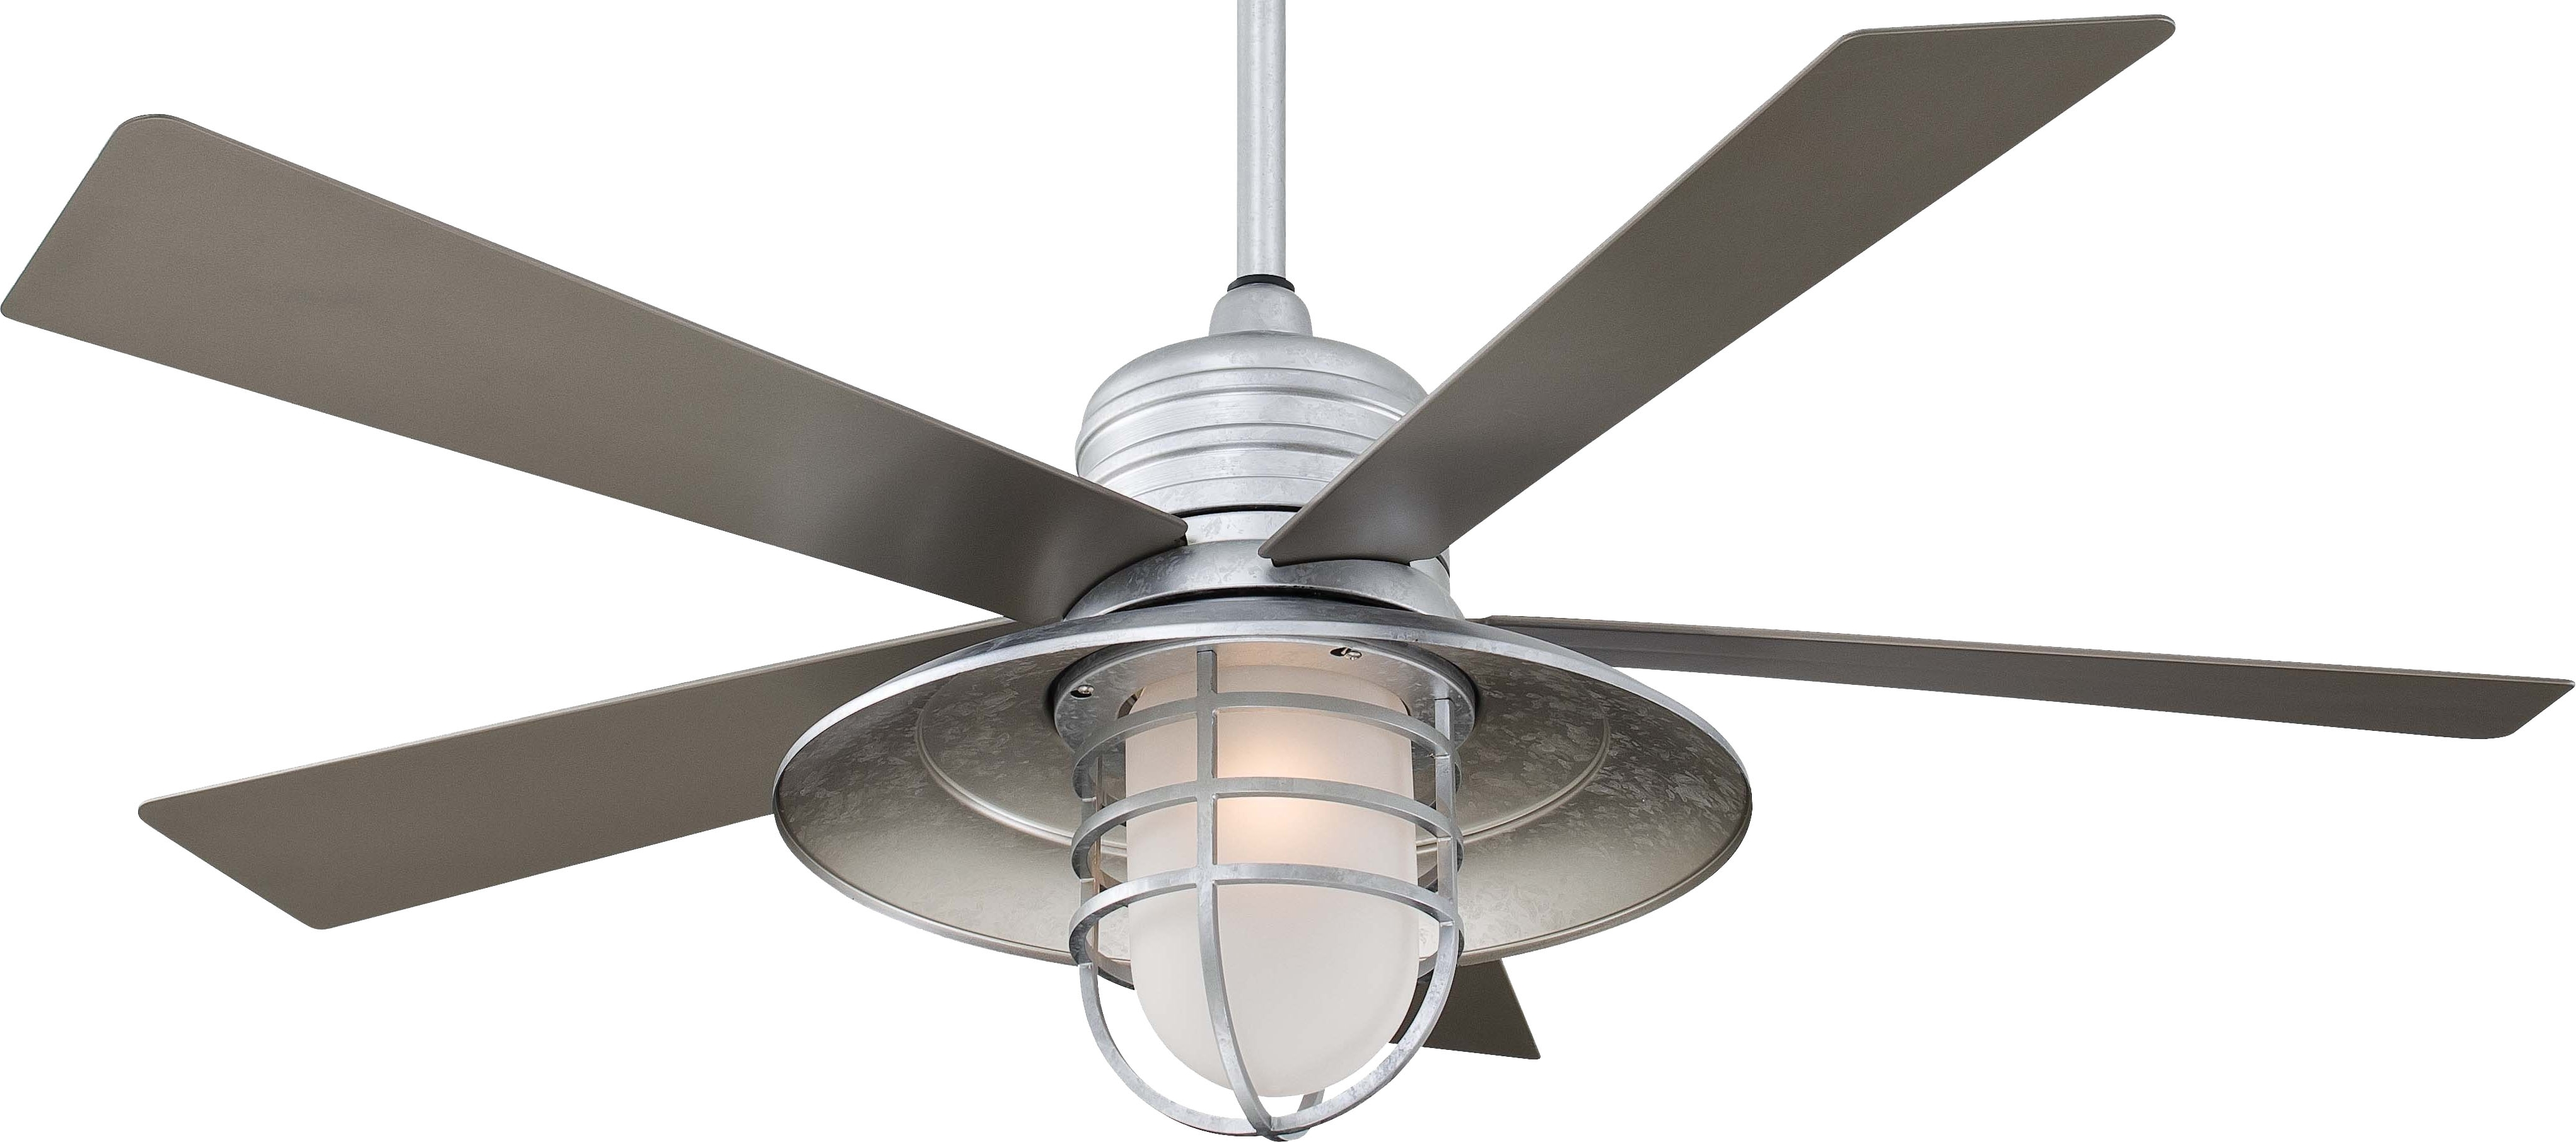 Newest Large Indoor Ceiling Fans With Lights Outstanding Outdoor Ceiling Inside Large Outdoor Ceiling Fans With Lights (View 14 of 20)